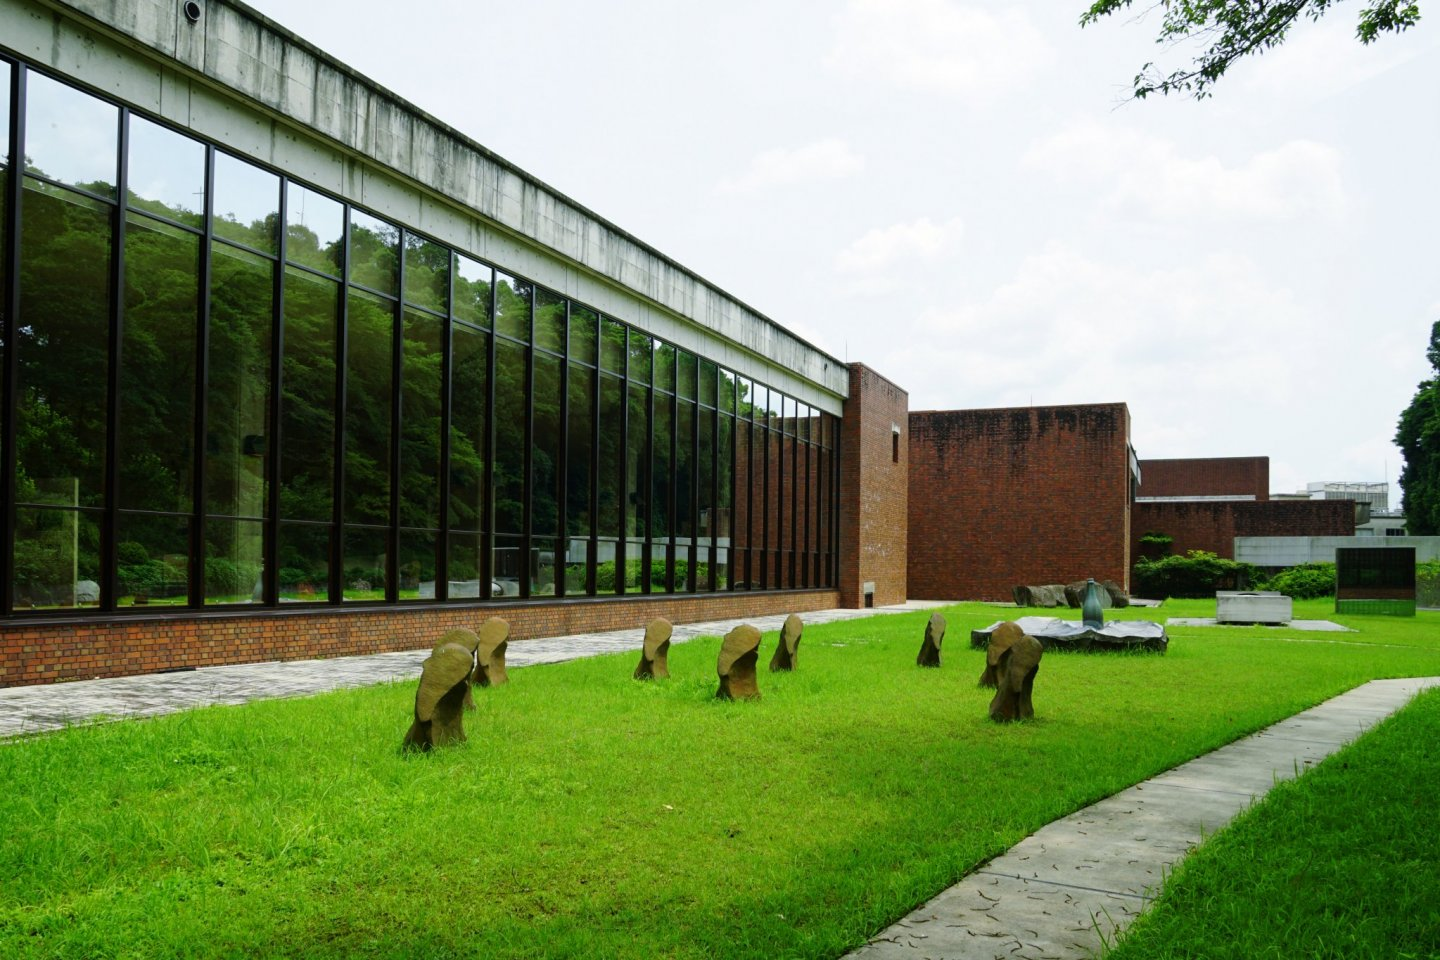 The large windows look out to the surrounding nature